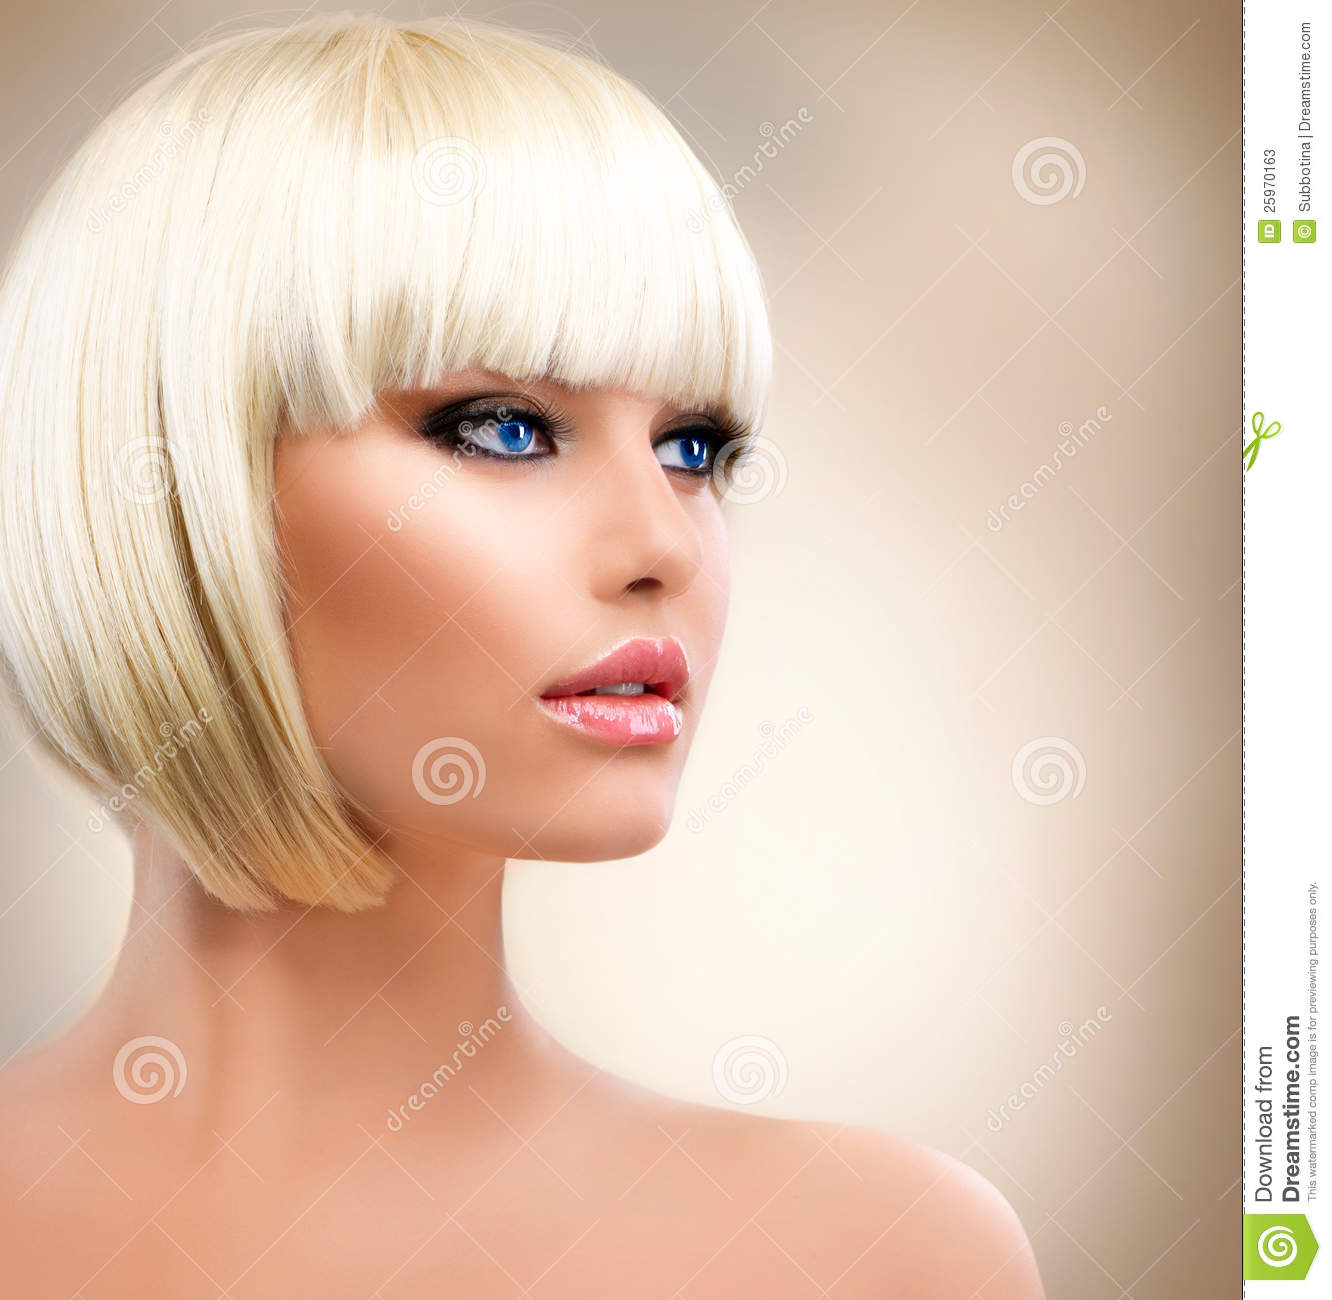 Girl With Healthy Short Hair Stock Photos Image 25970163